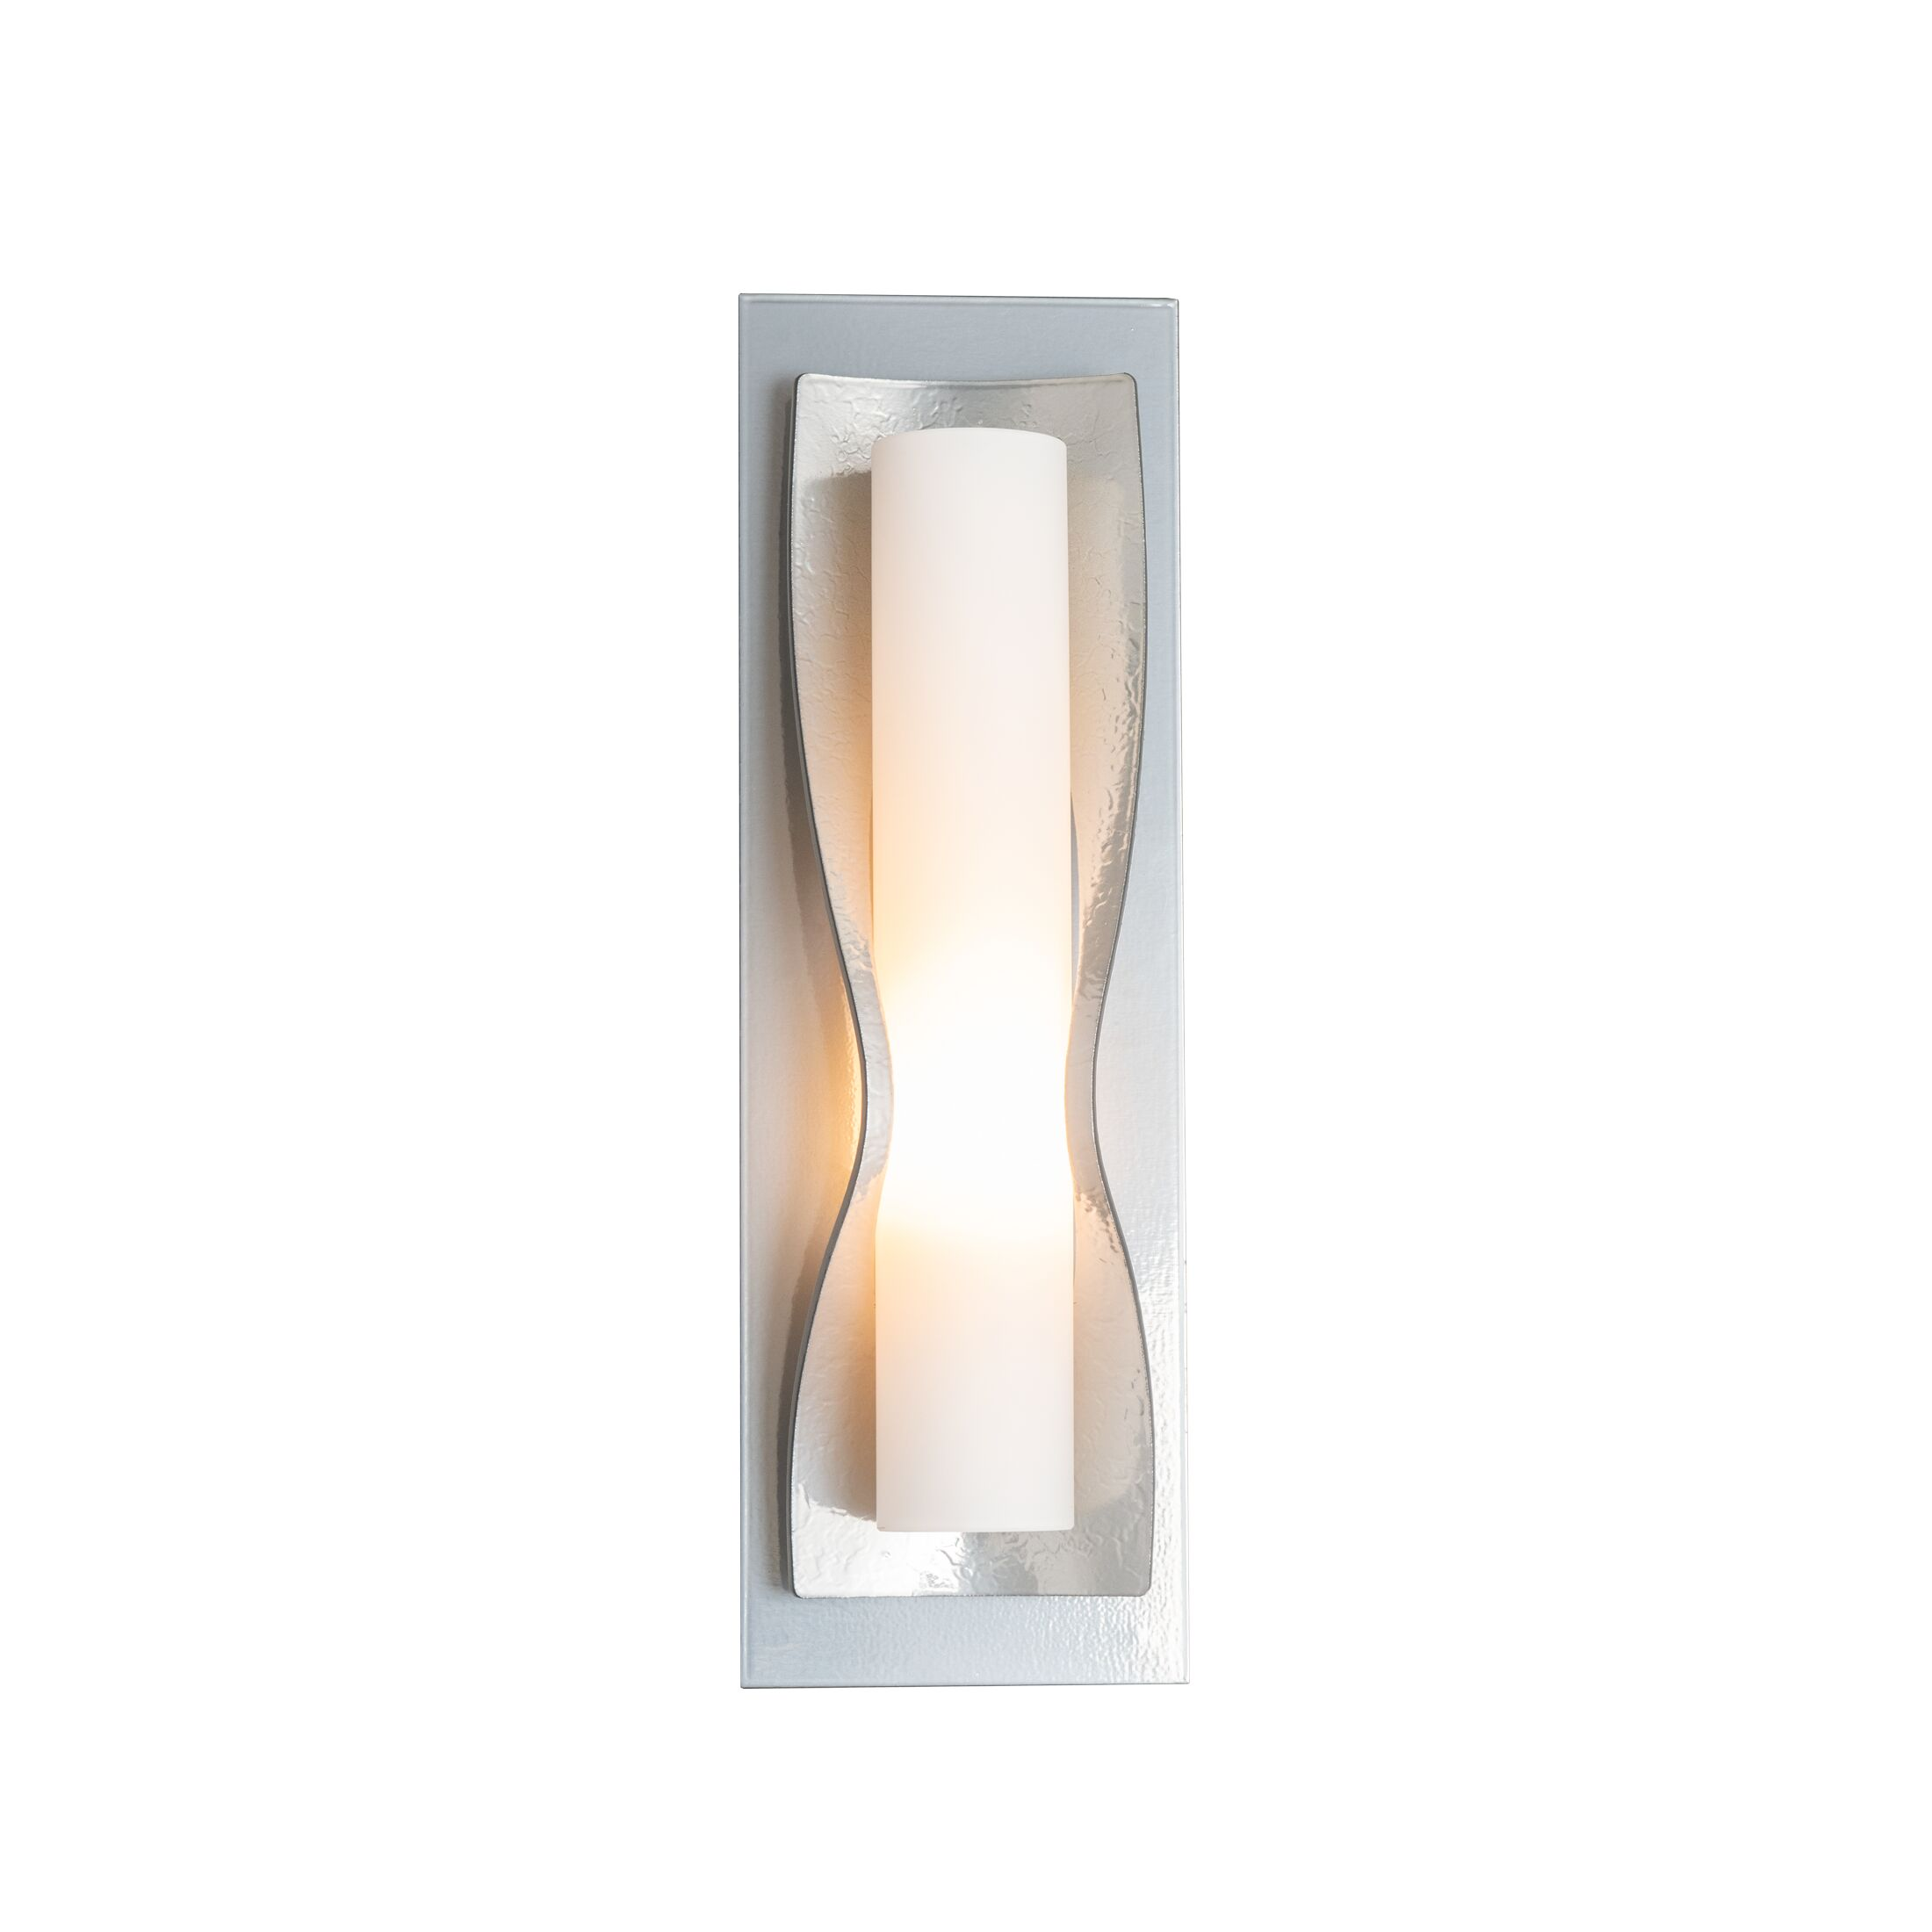 Product Detail: Dune Sconce